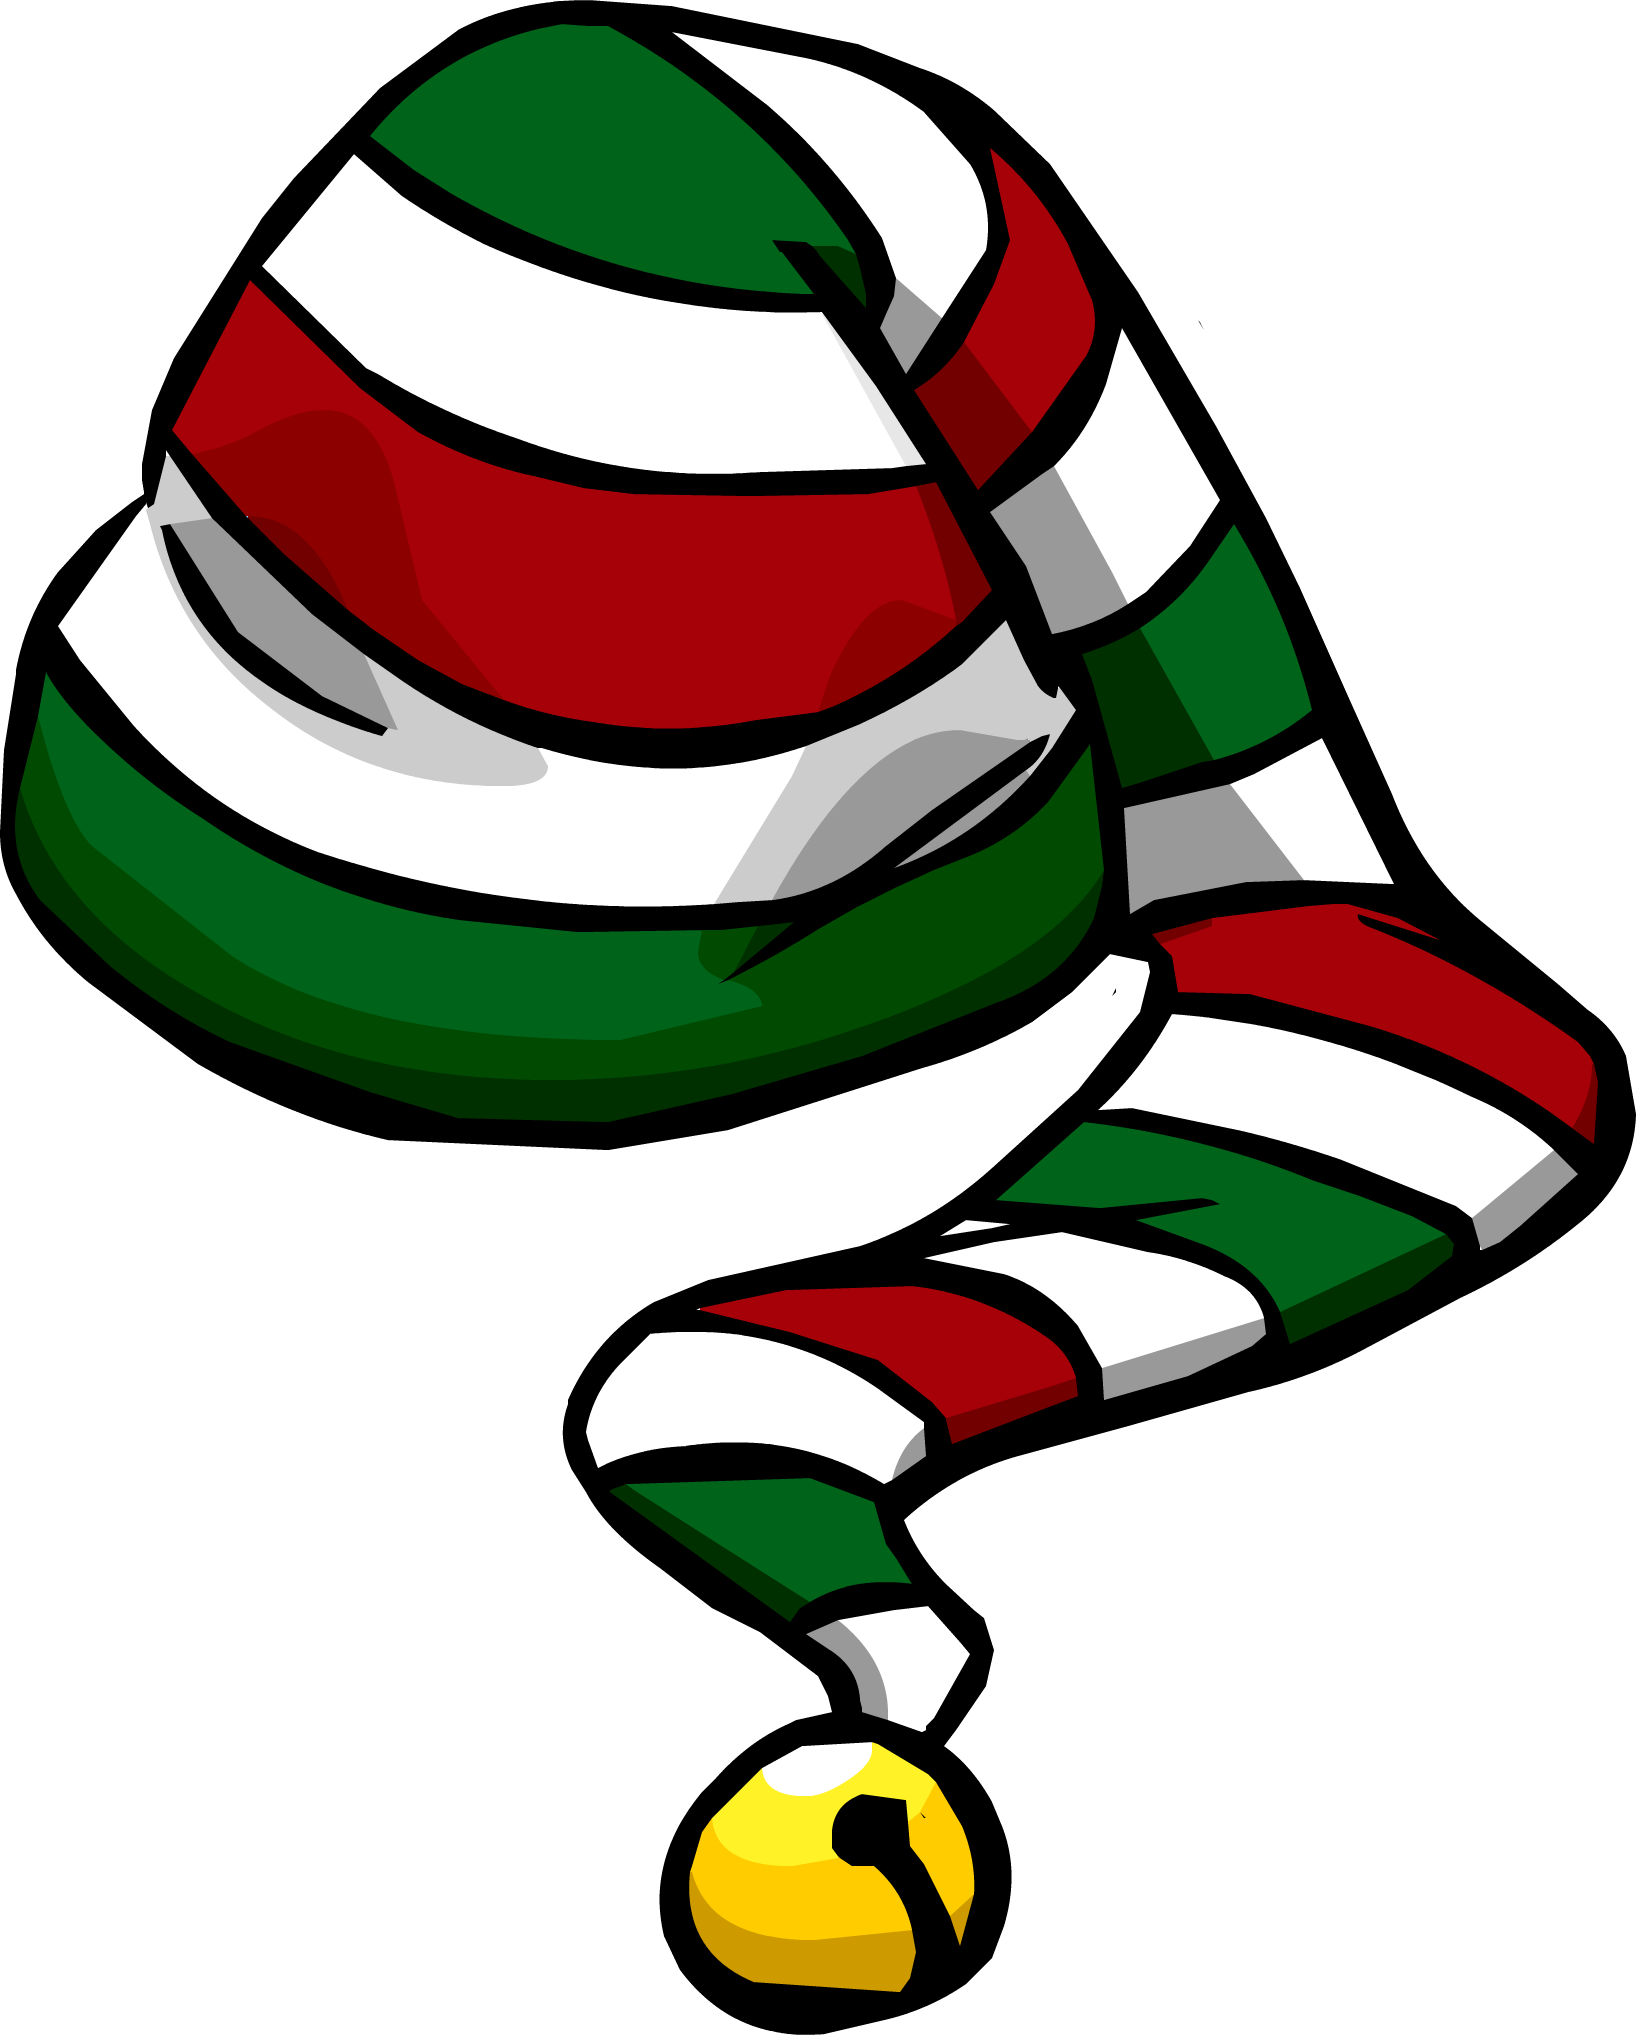 Candy cane heart clipart free graphic royalty free download Image - Candy Cane Hat.PNG | Club Penguin Wiki | FANDOM powered by Wikia graphic royalty free download